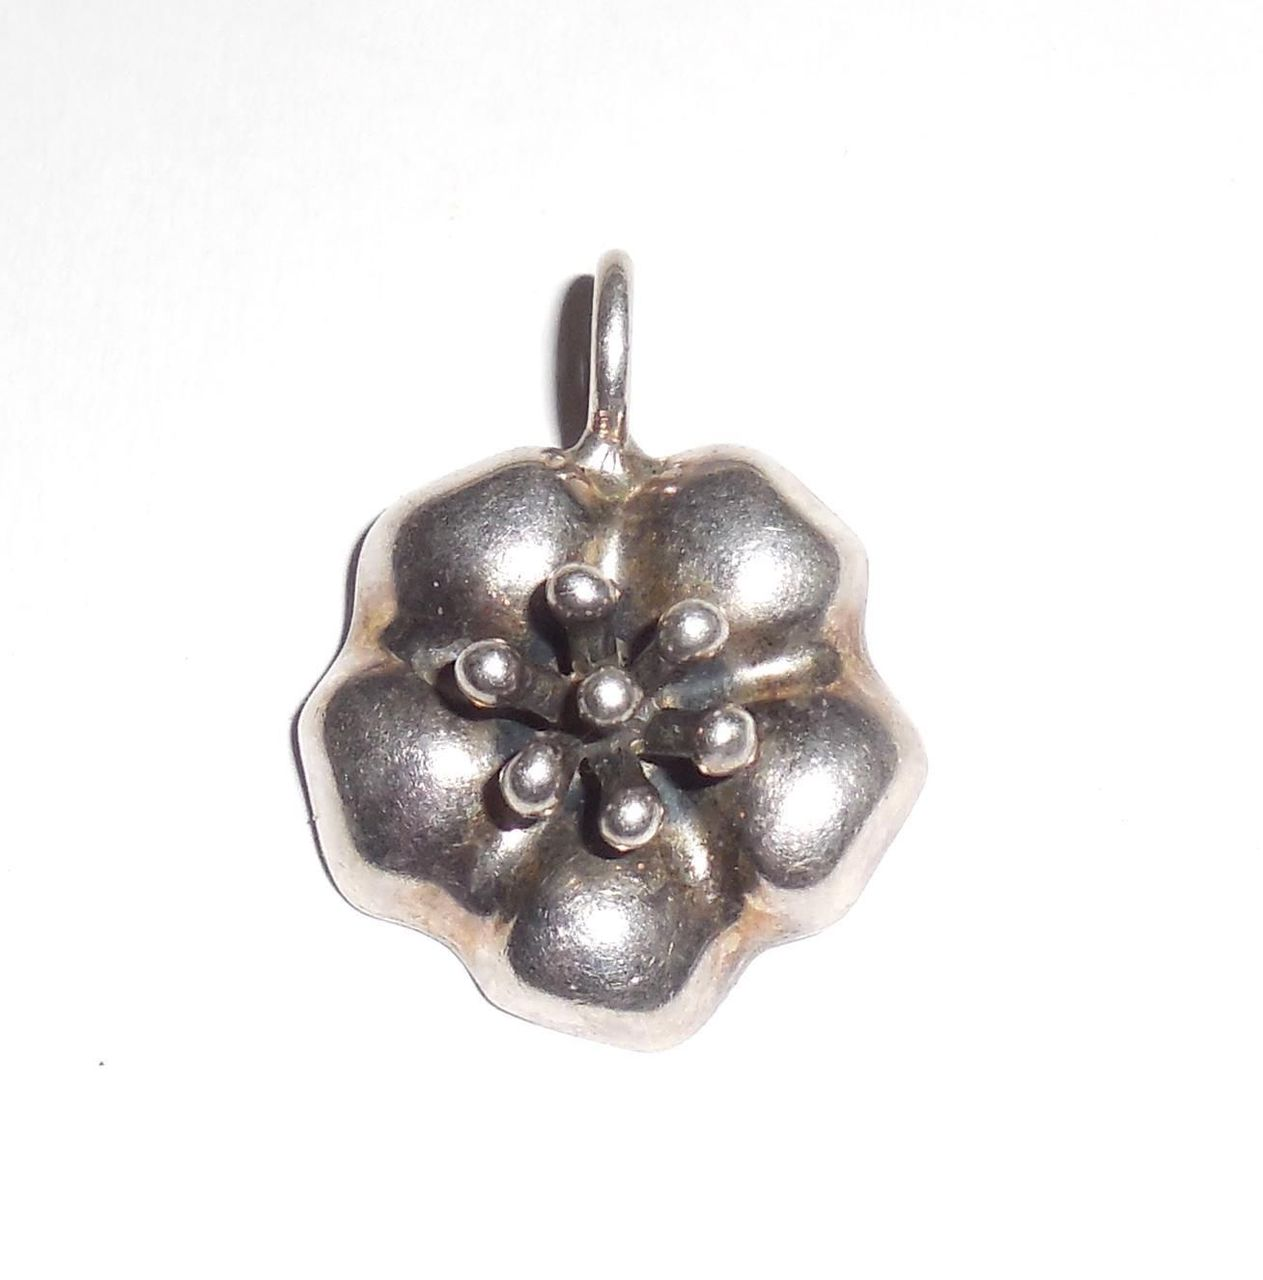 Vintage Barra Sterling Silver Puffy Flower Pendant Fob